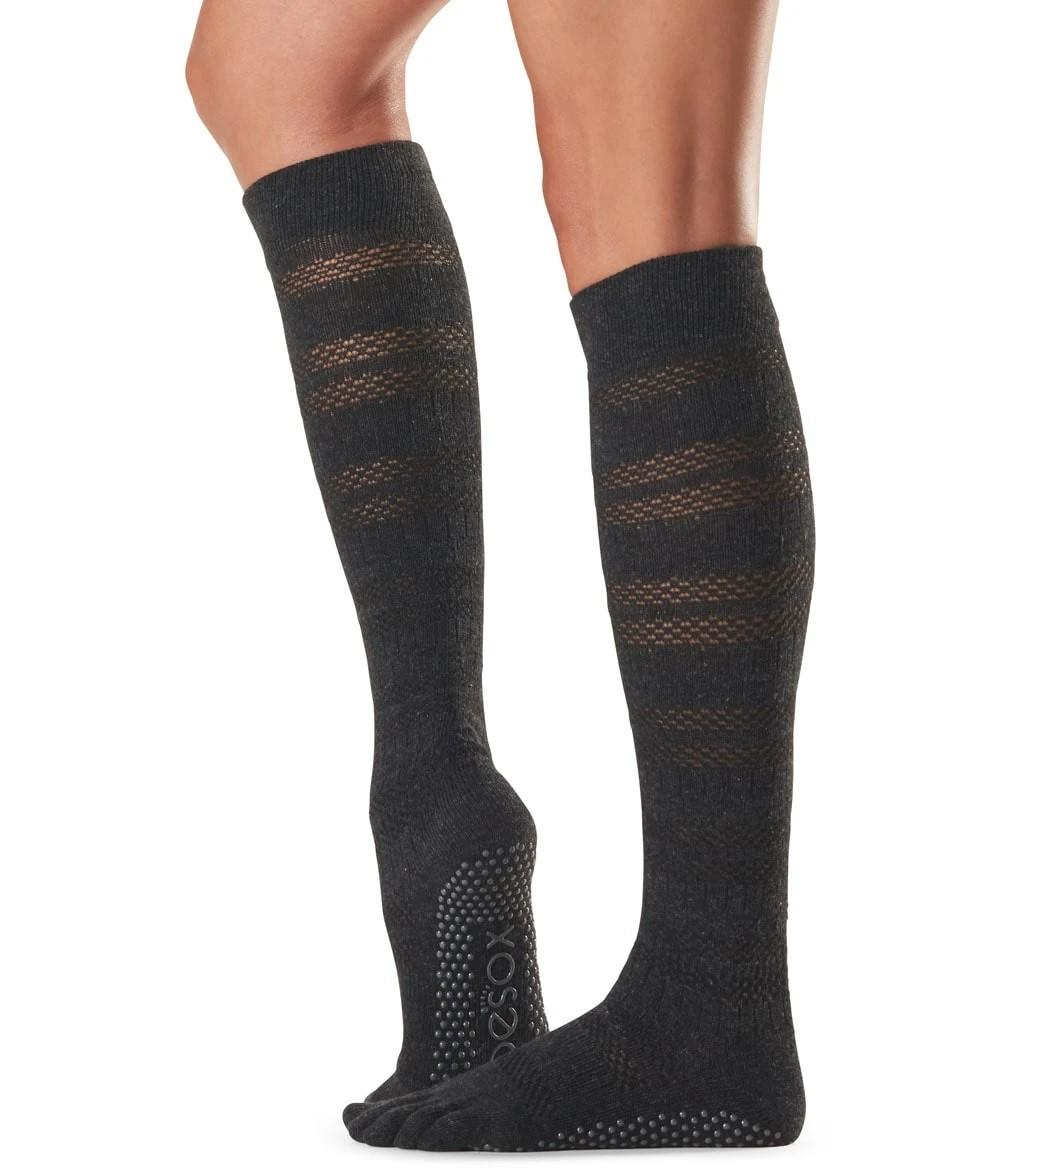 ToeSox Scrunch Knee High FT Grip Socks, merci black